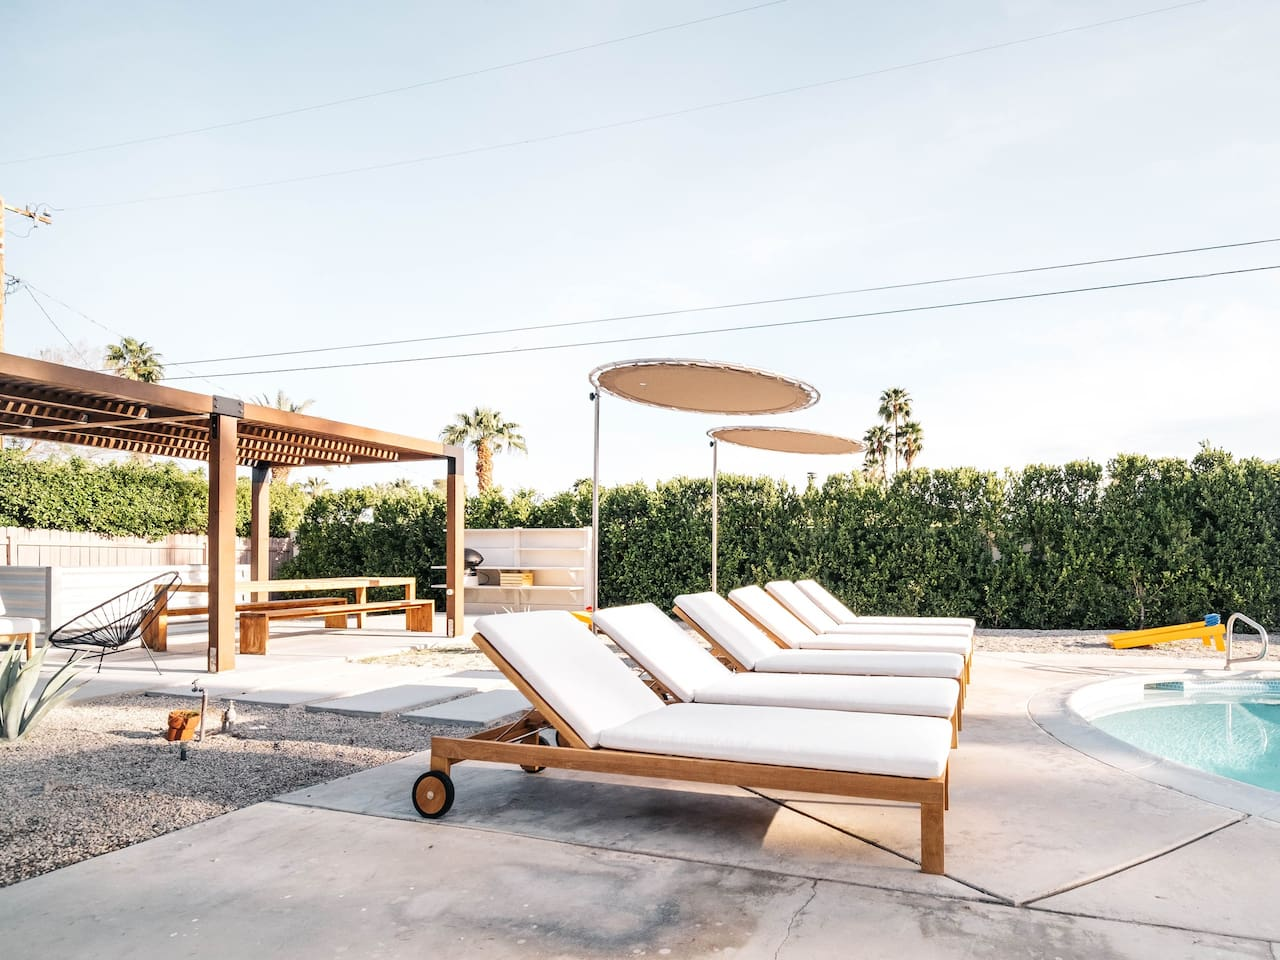 Enjoy Palm Springs the right way; sun bathing by the pool and having a nice dinner with a view of the mountains.